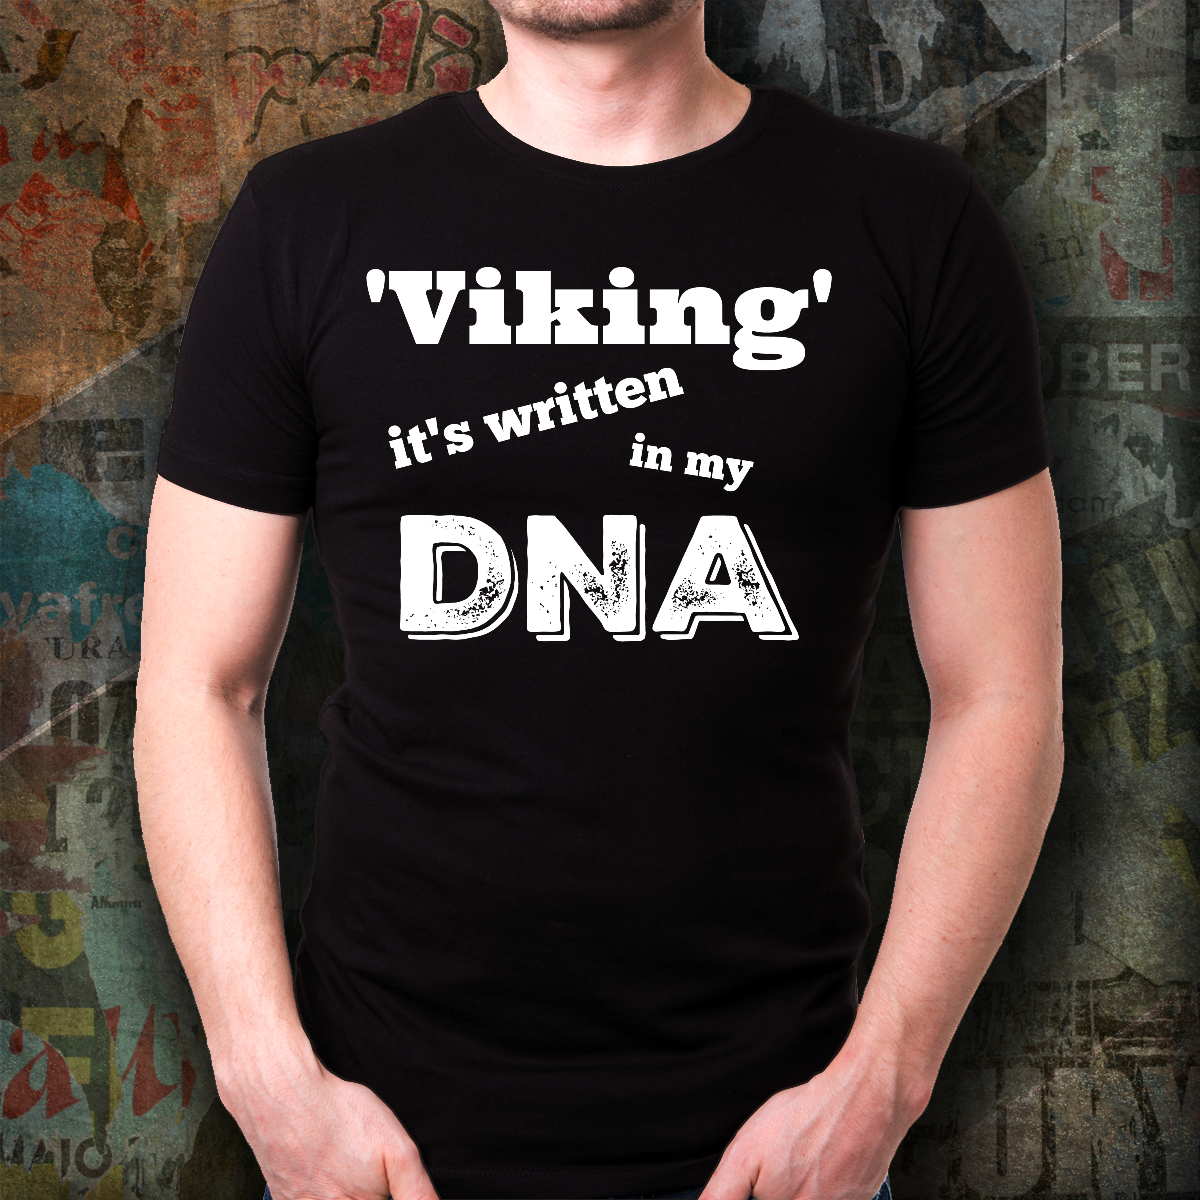 A fun Viking gift for him with Scandinavian roots. Perfect for someone from Norway, Denmark, Sweden.